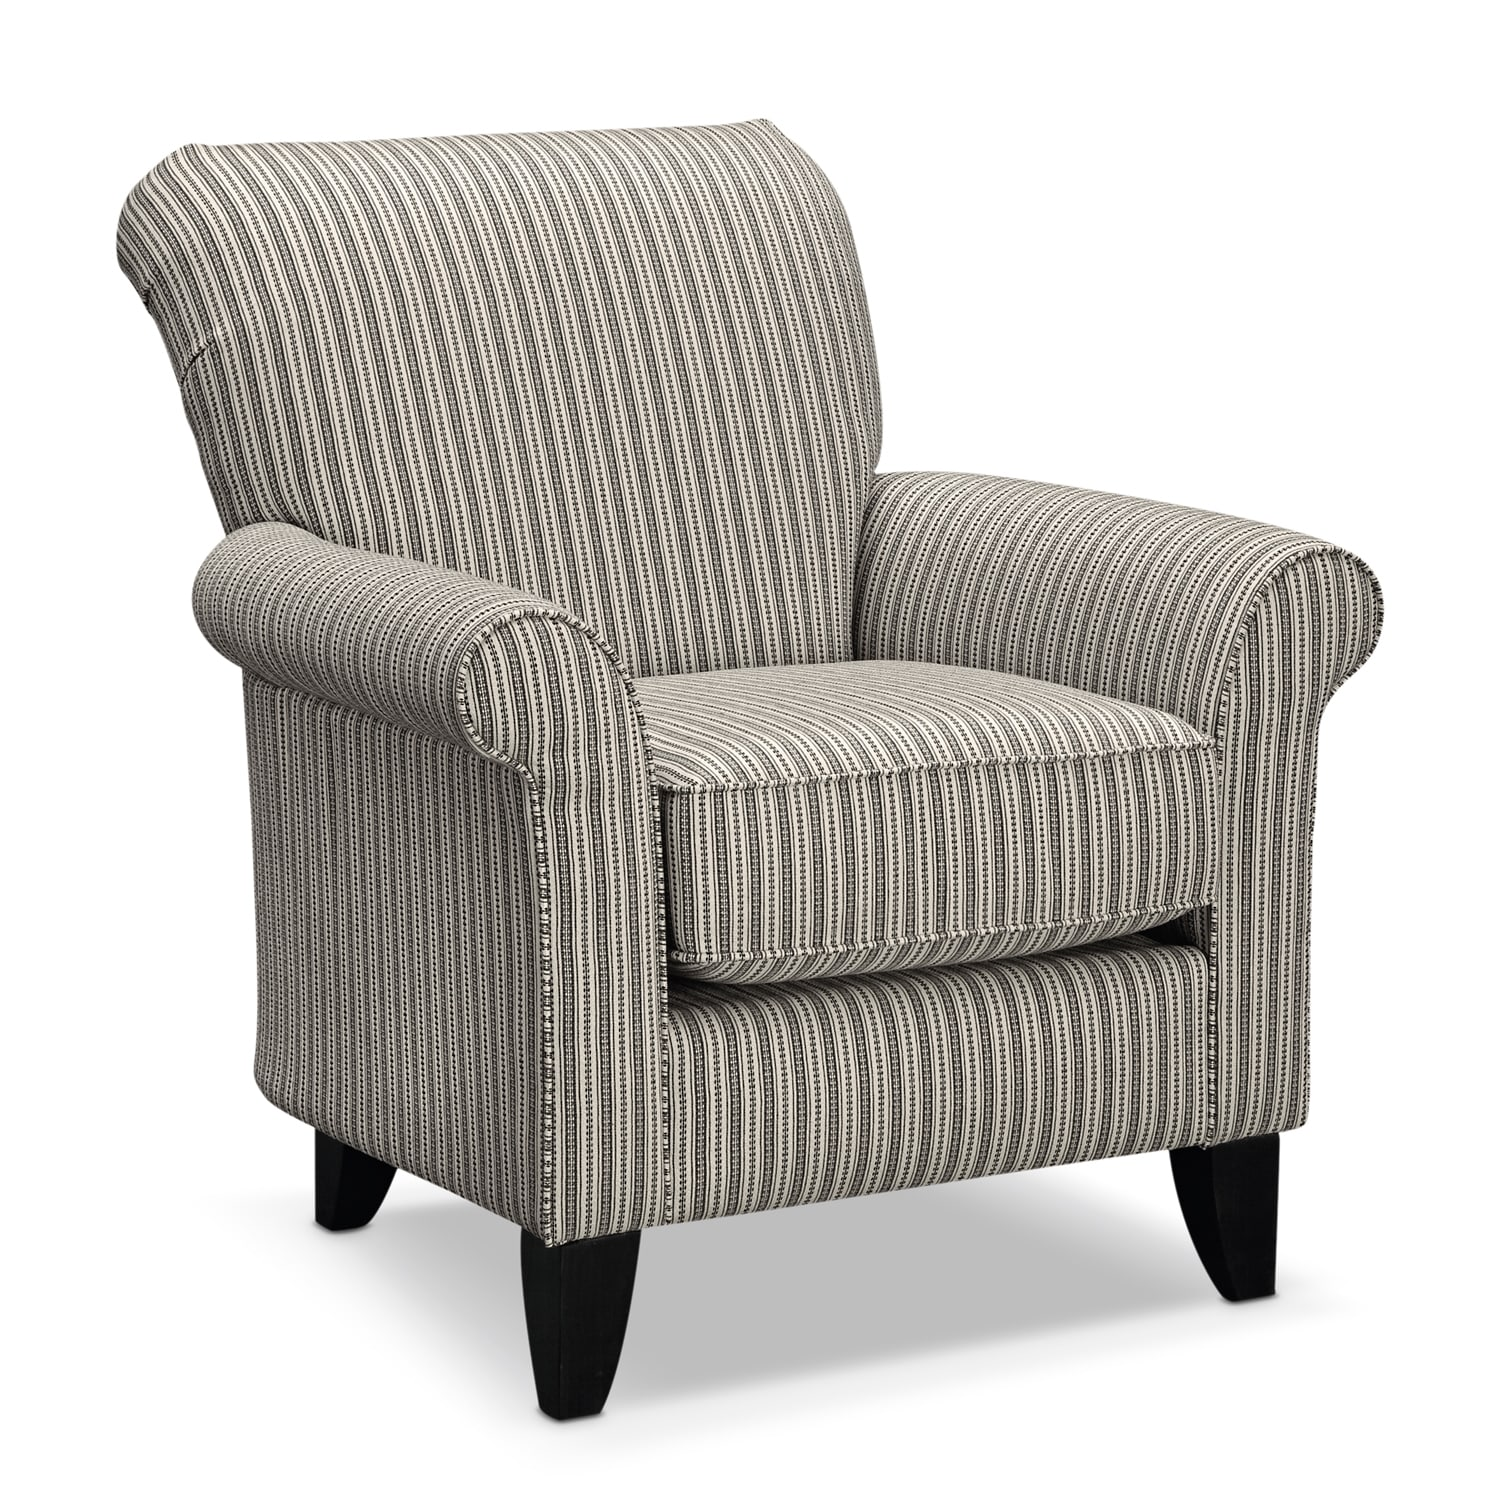 Colette accent chair gray stripe value city furniture for Family room chairs